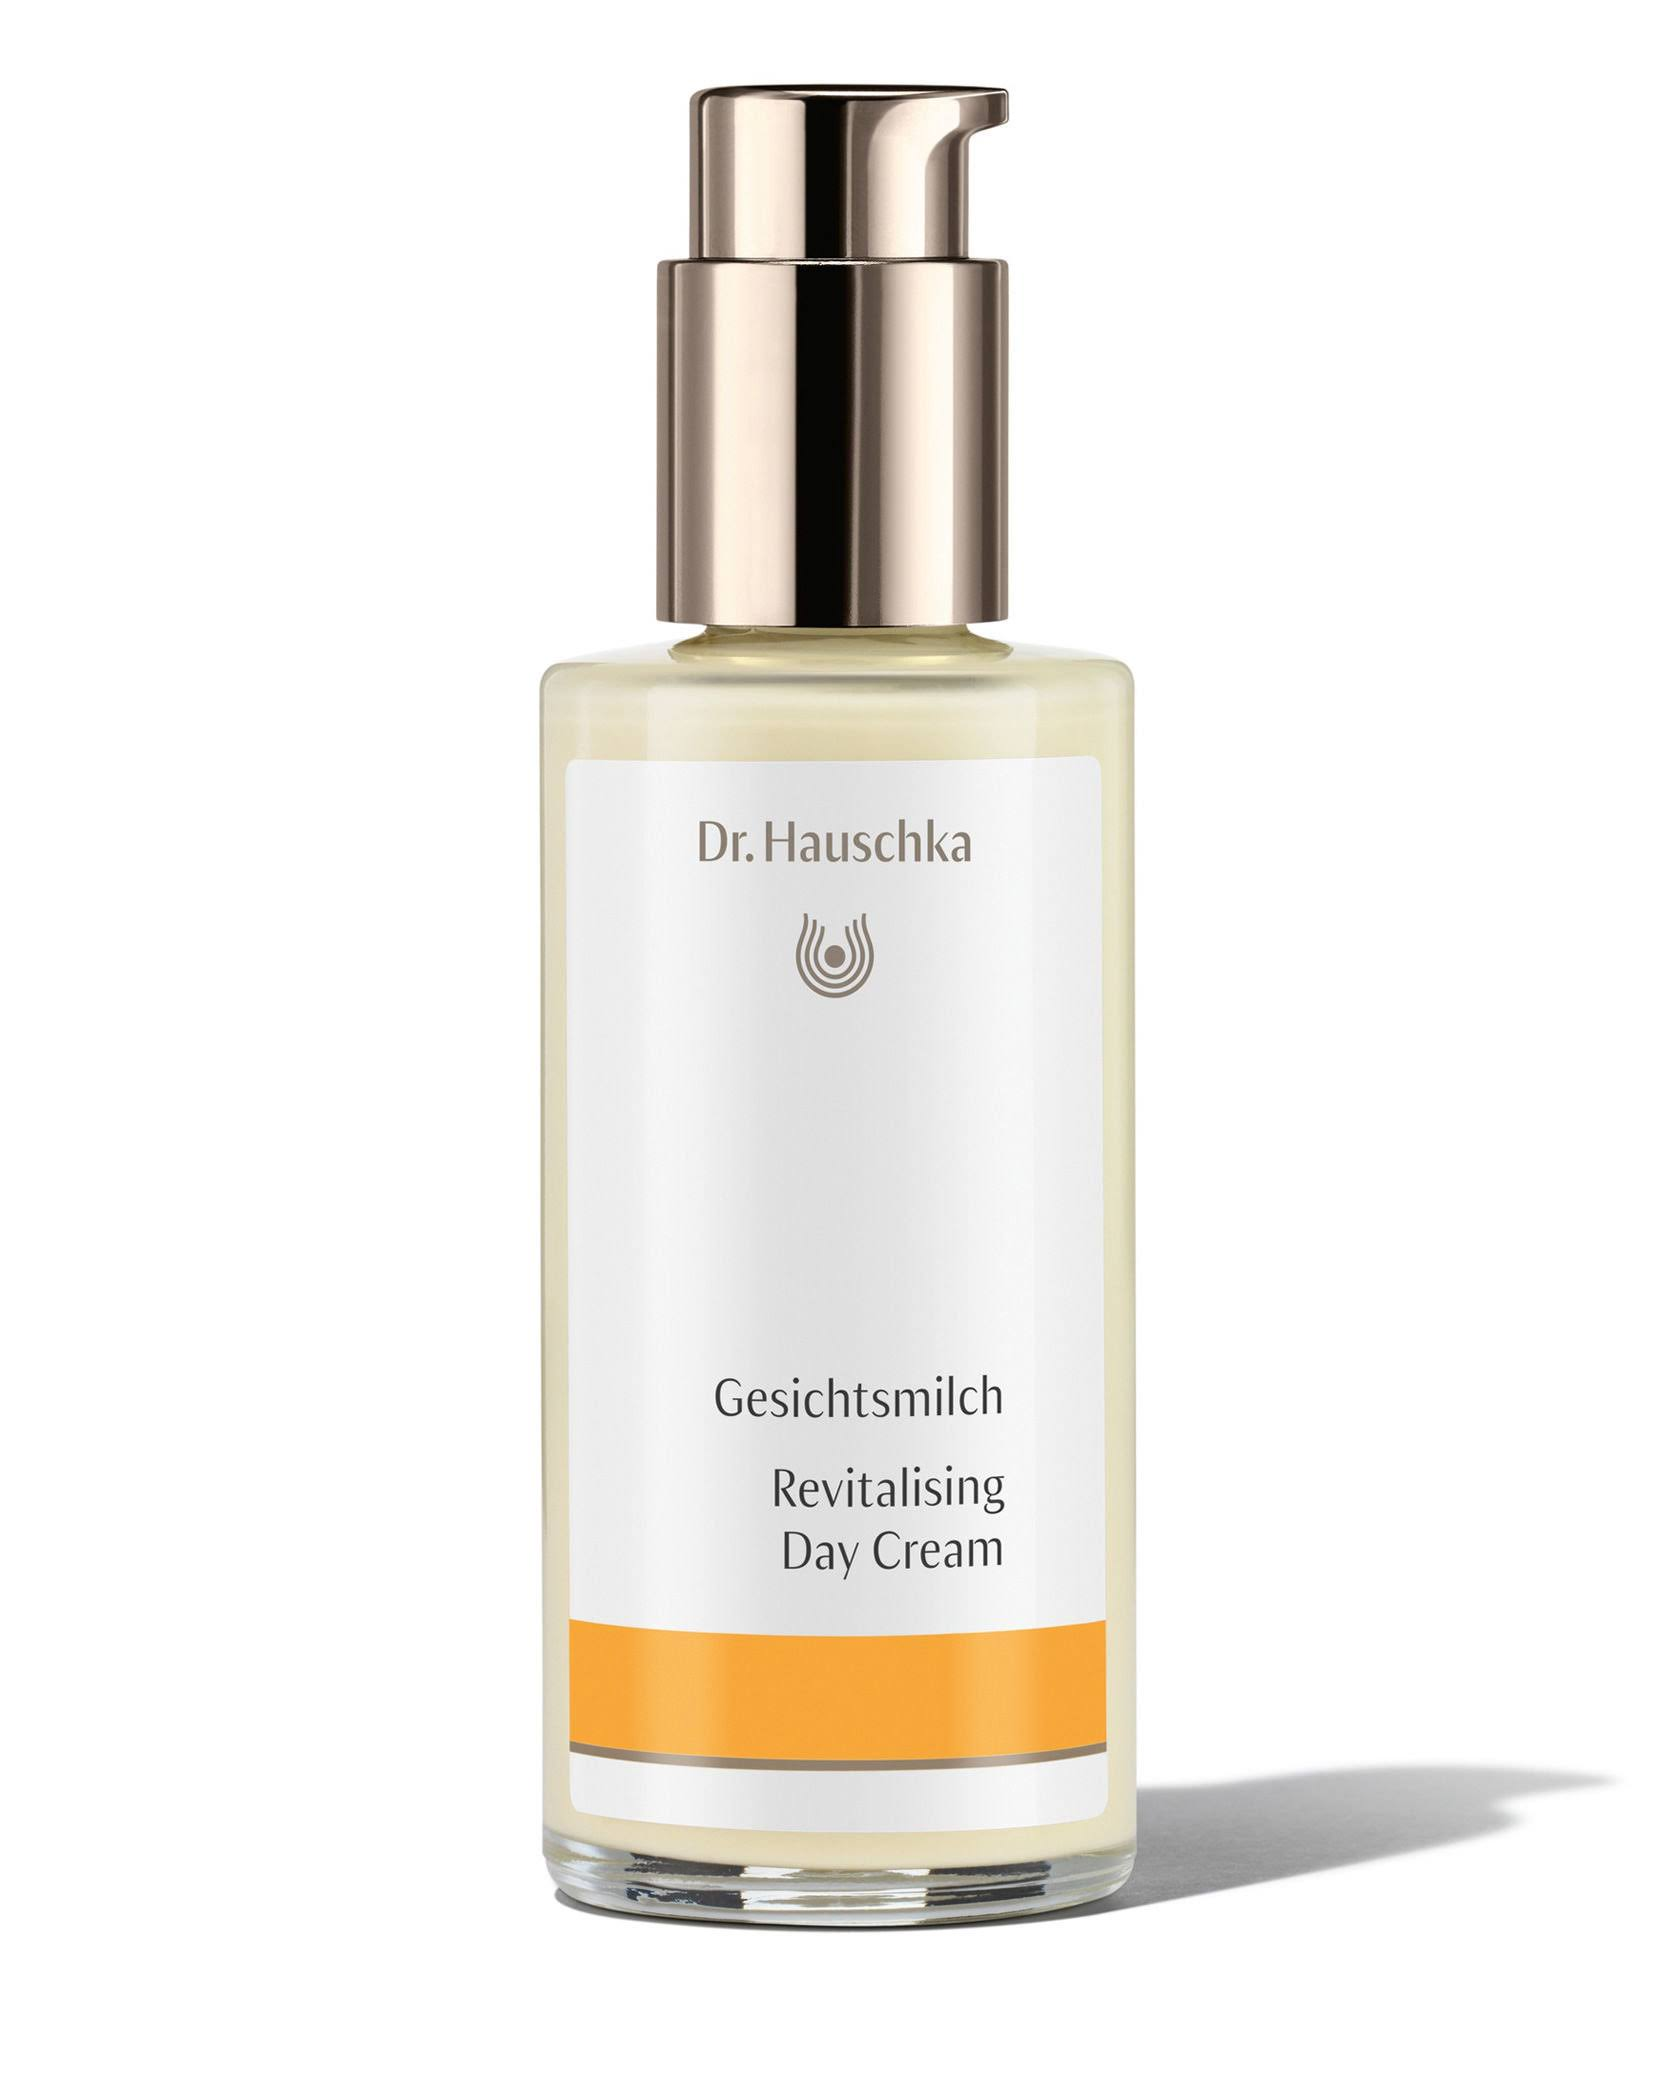 Dr. Hauschka Revitalising Day Cream